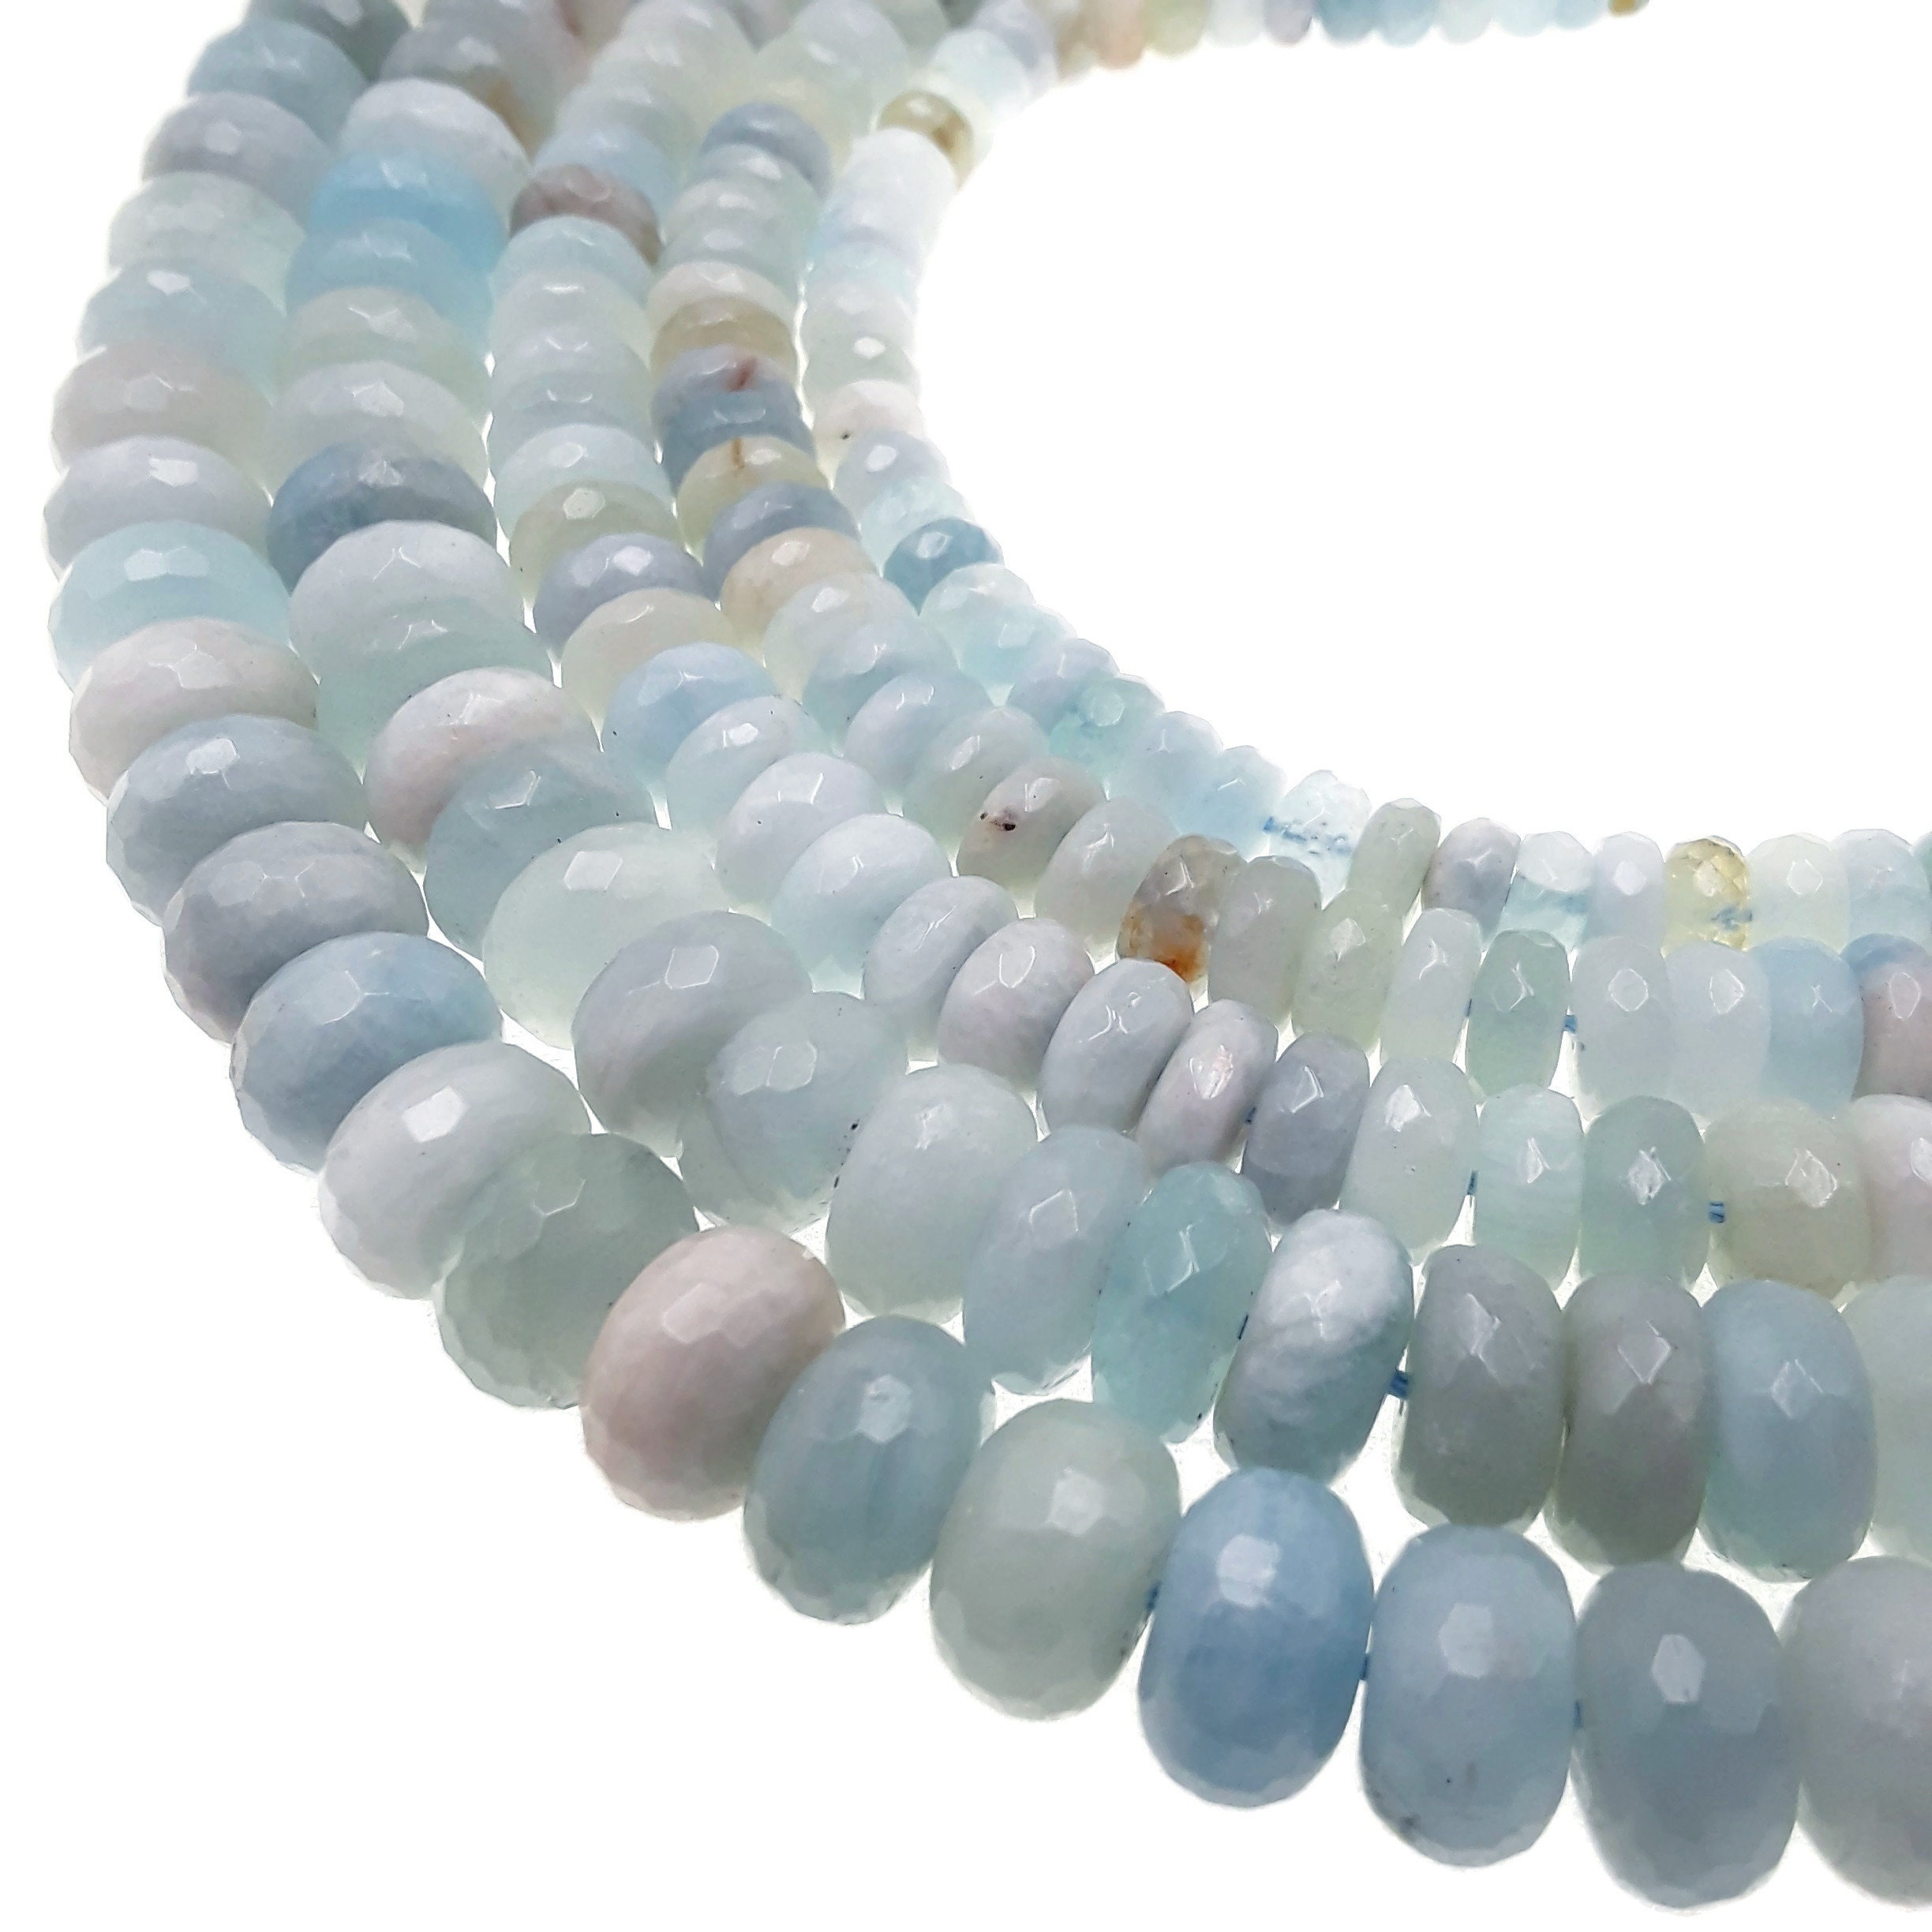 1 Strand Natural Faceted 2mm Aquamarine Gemstone Jewelry Making Rondelles Bead